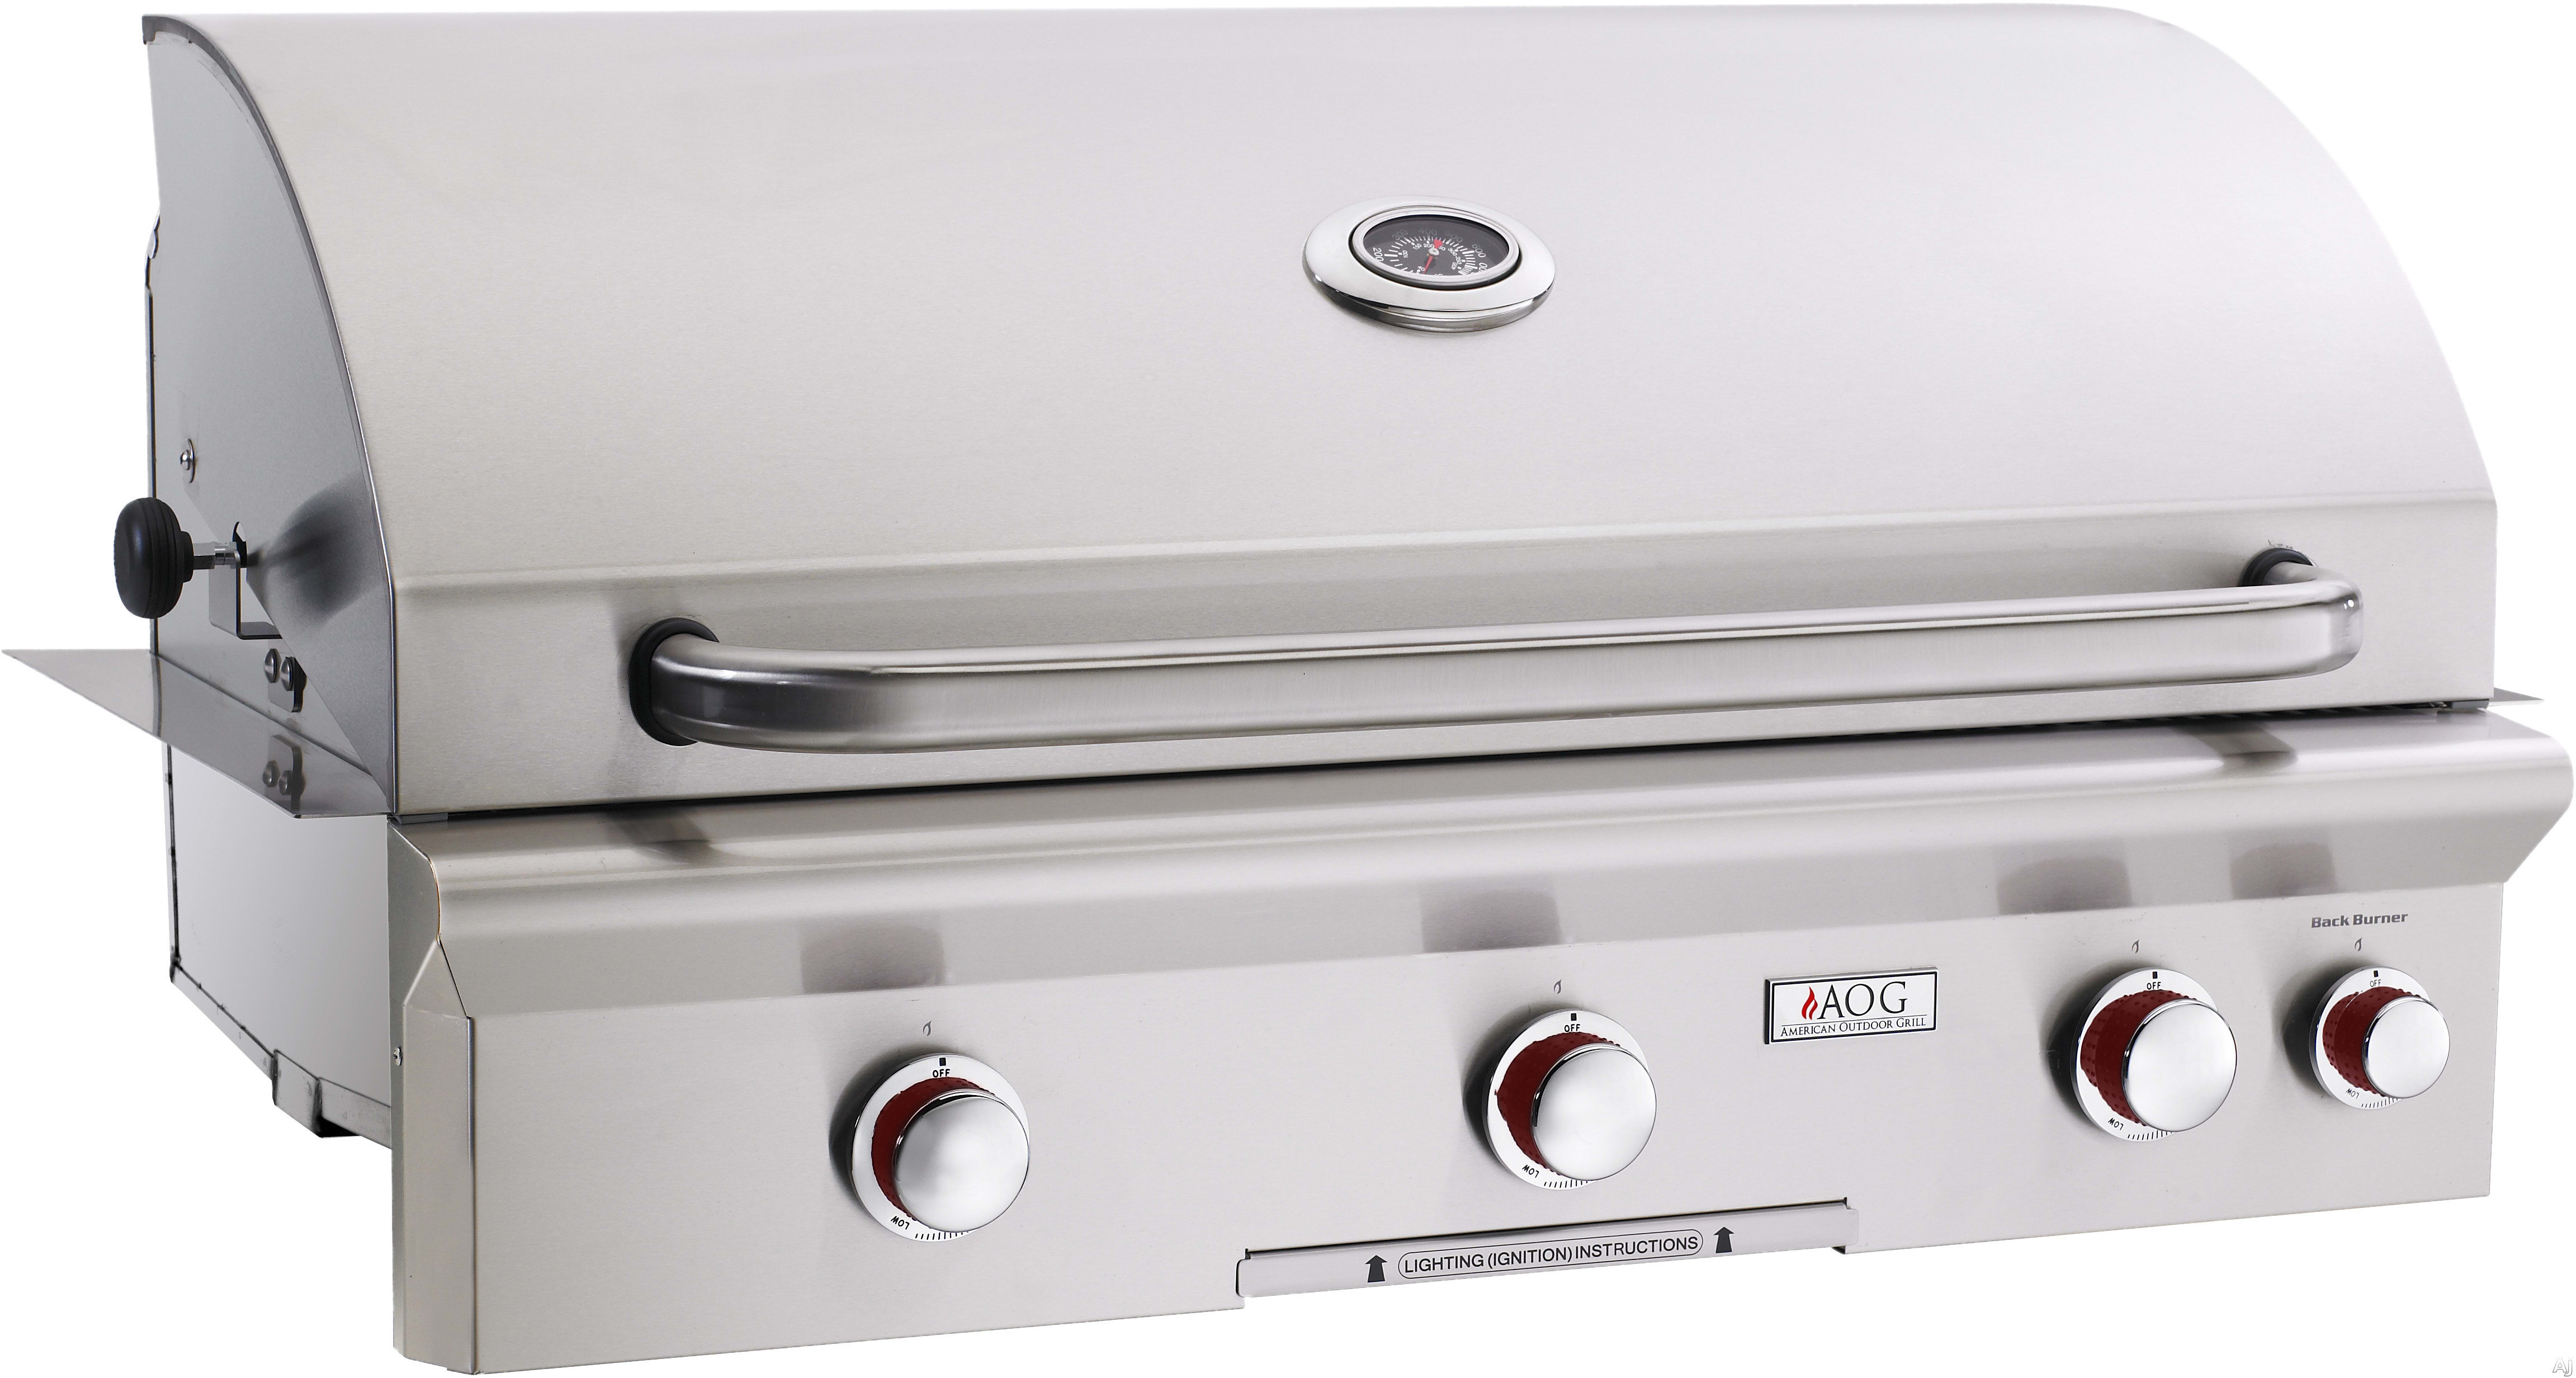 American Outdoor Grill 36NBT00SP 36 Inch Built In Gas Grill With 648 Sq.  In. Cooking Surface, 3 16,500 BTU Primary Burners, Analog Thermometer And  Stainless ...